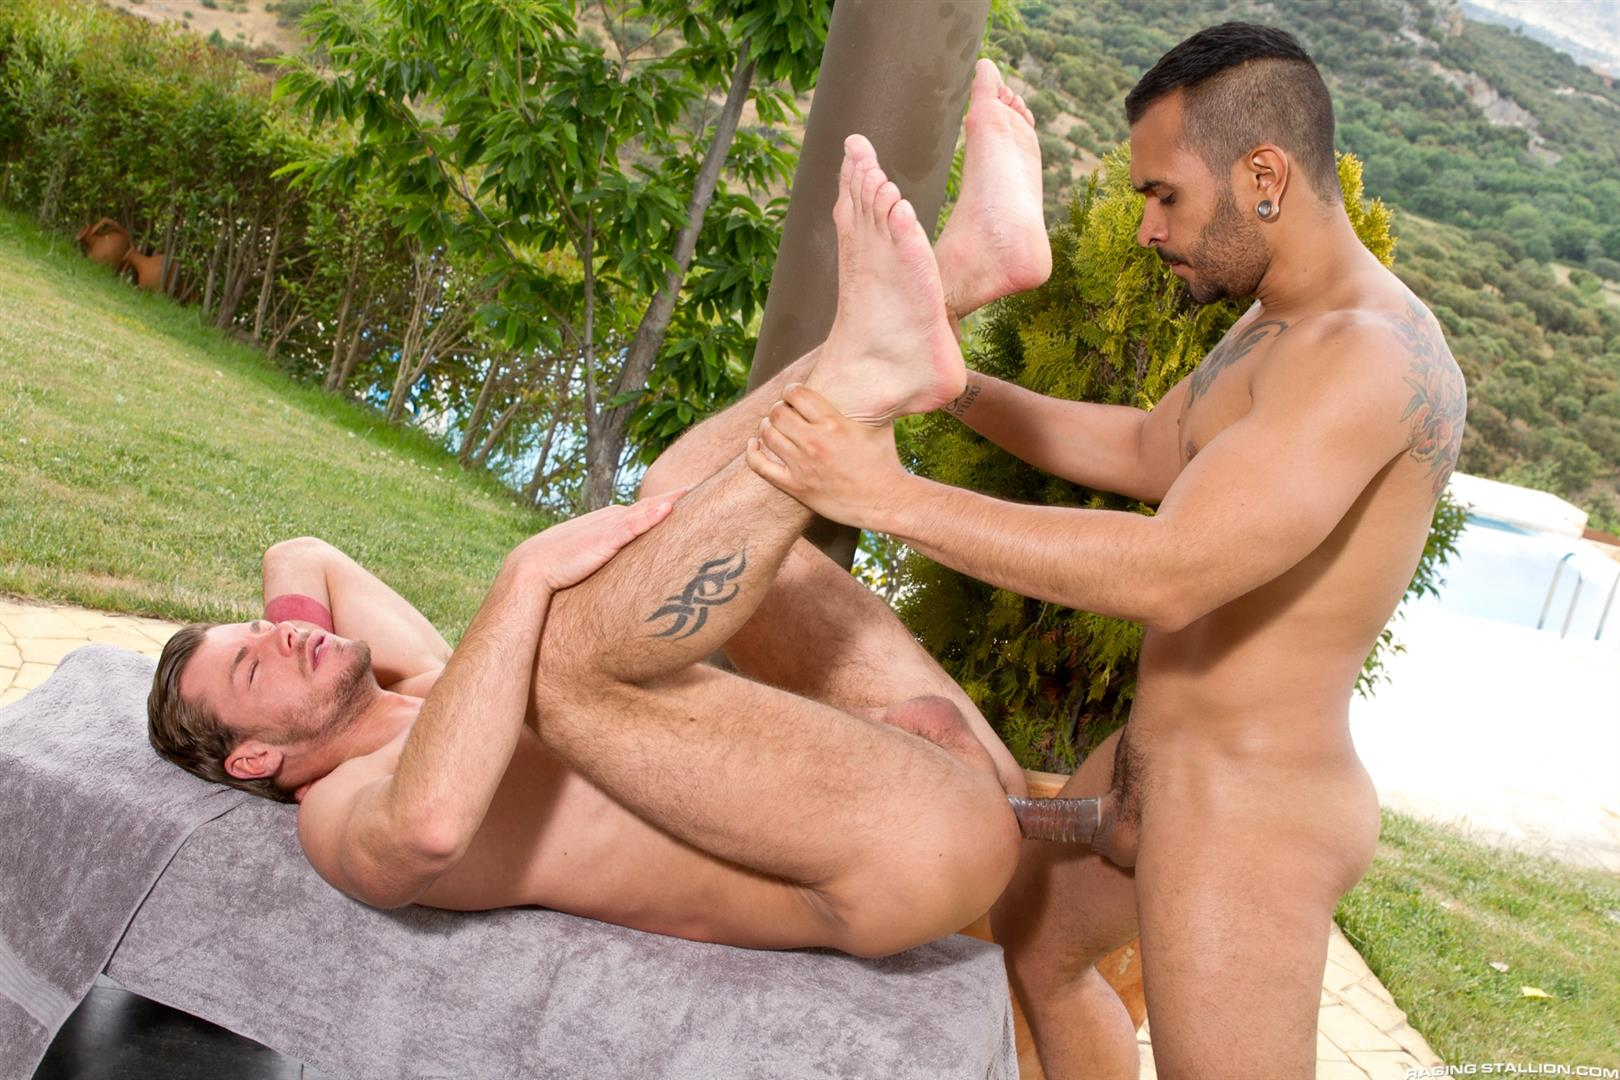 Raging Stallion Lucio Saints and Toby Dutch Big Uncut Cock Gay Sex Amateur Gay Porn 06 Lucio Saints Fucking Toby Dutch With His Big Uncut Cock